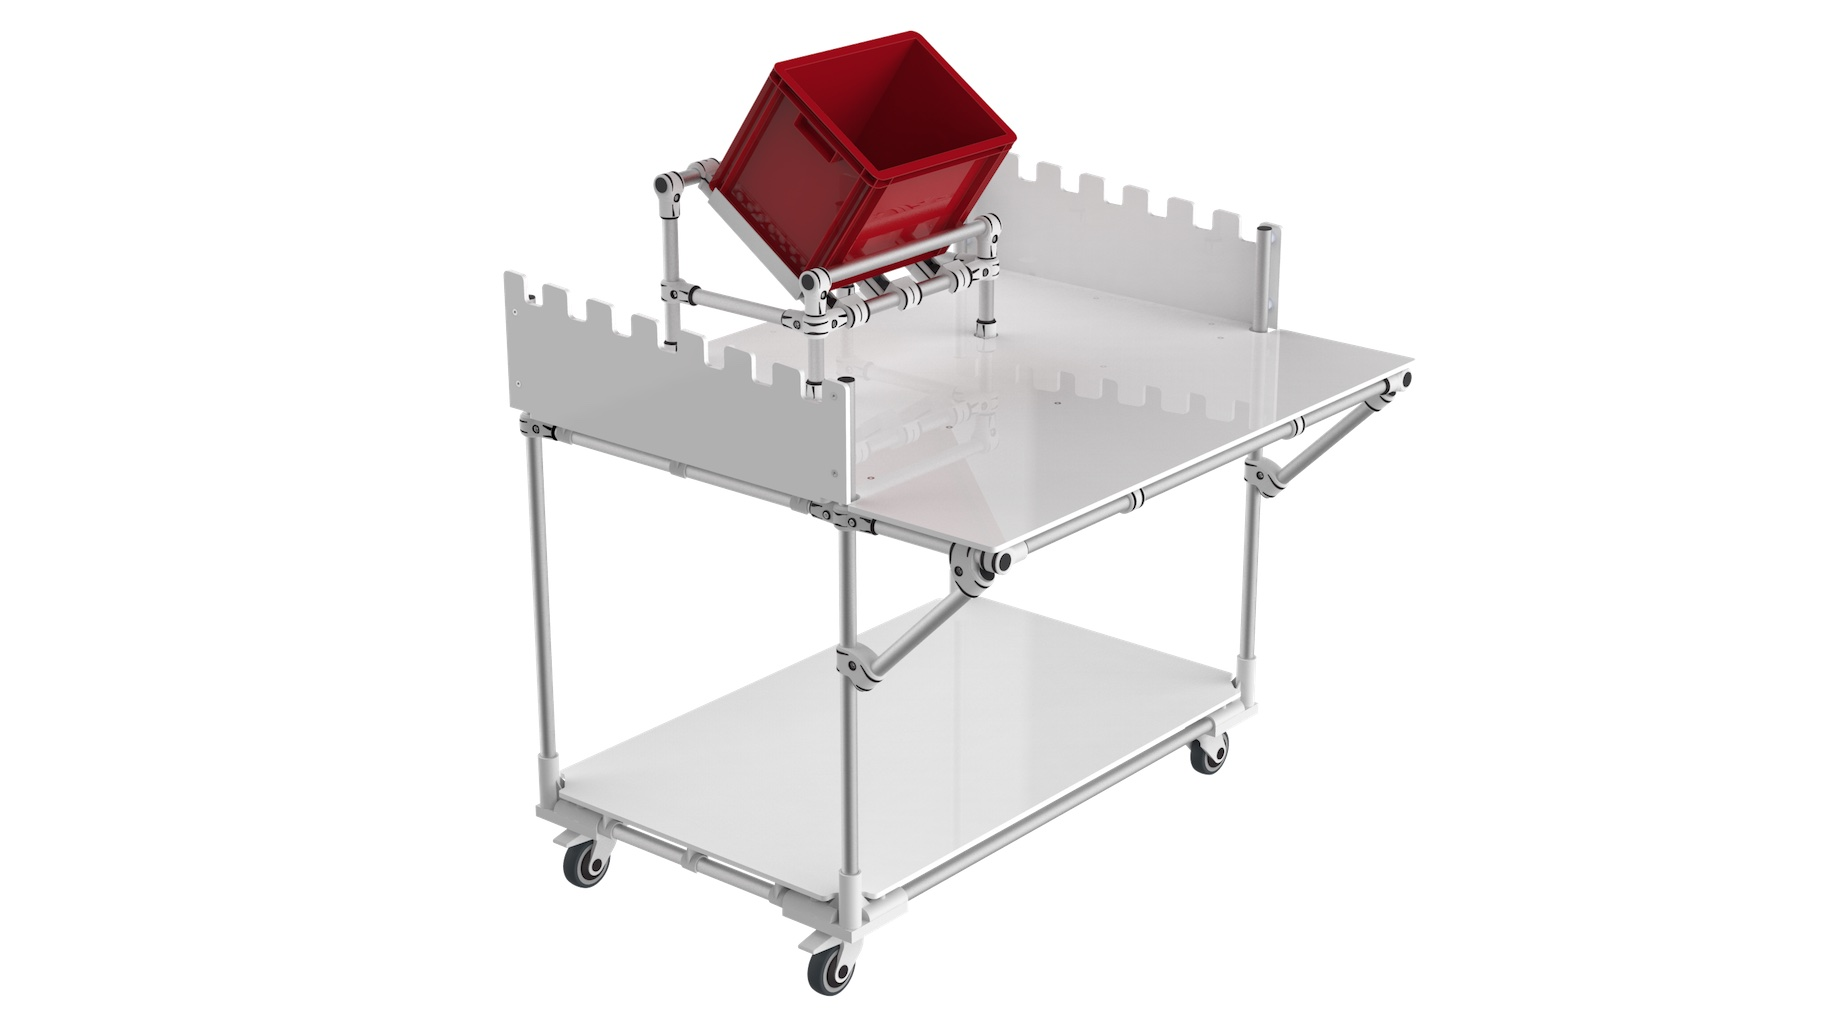 - Bespoke mobile workbench with centered picking zone.